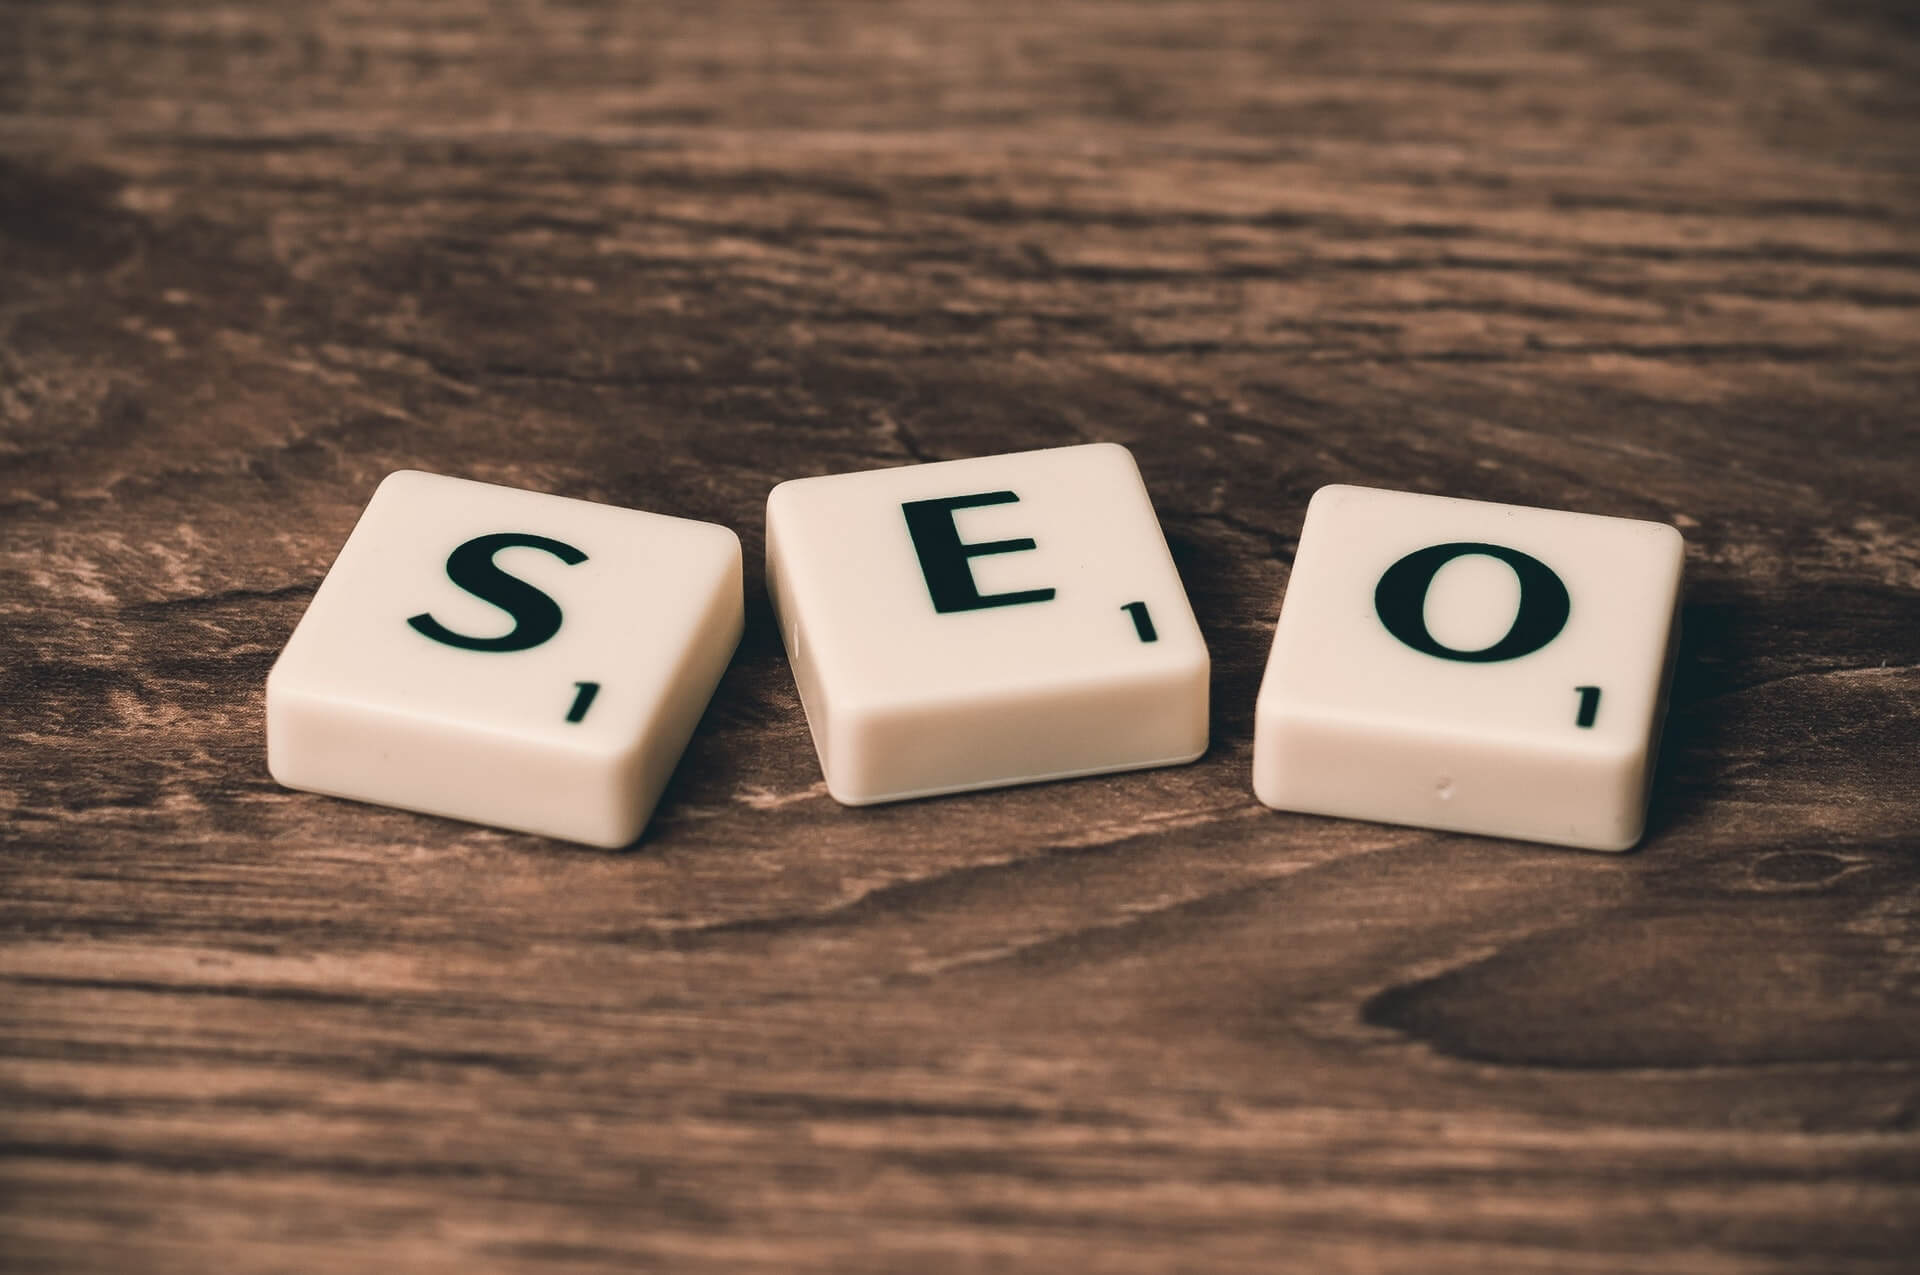 These helpful SEO tips can help you manage online reputations for your small business.